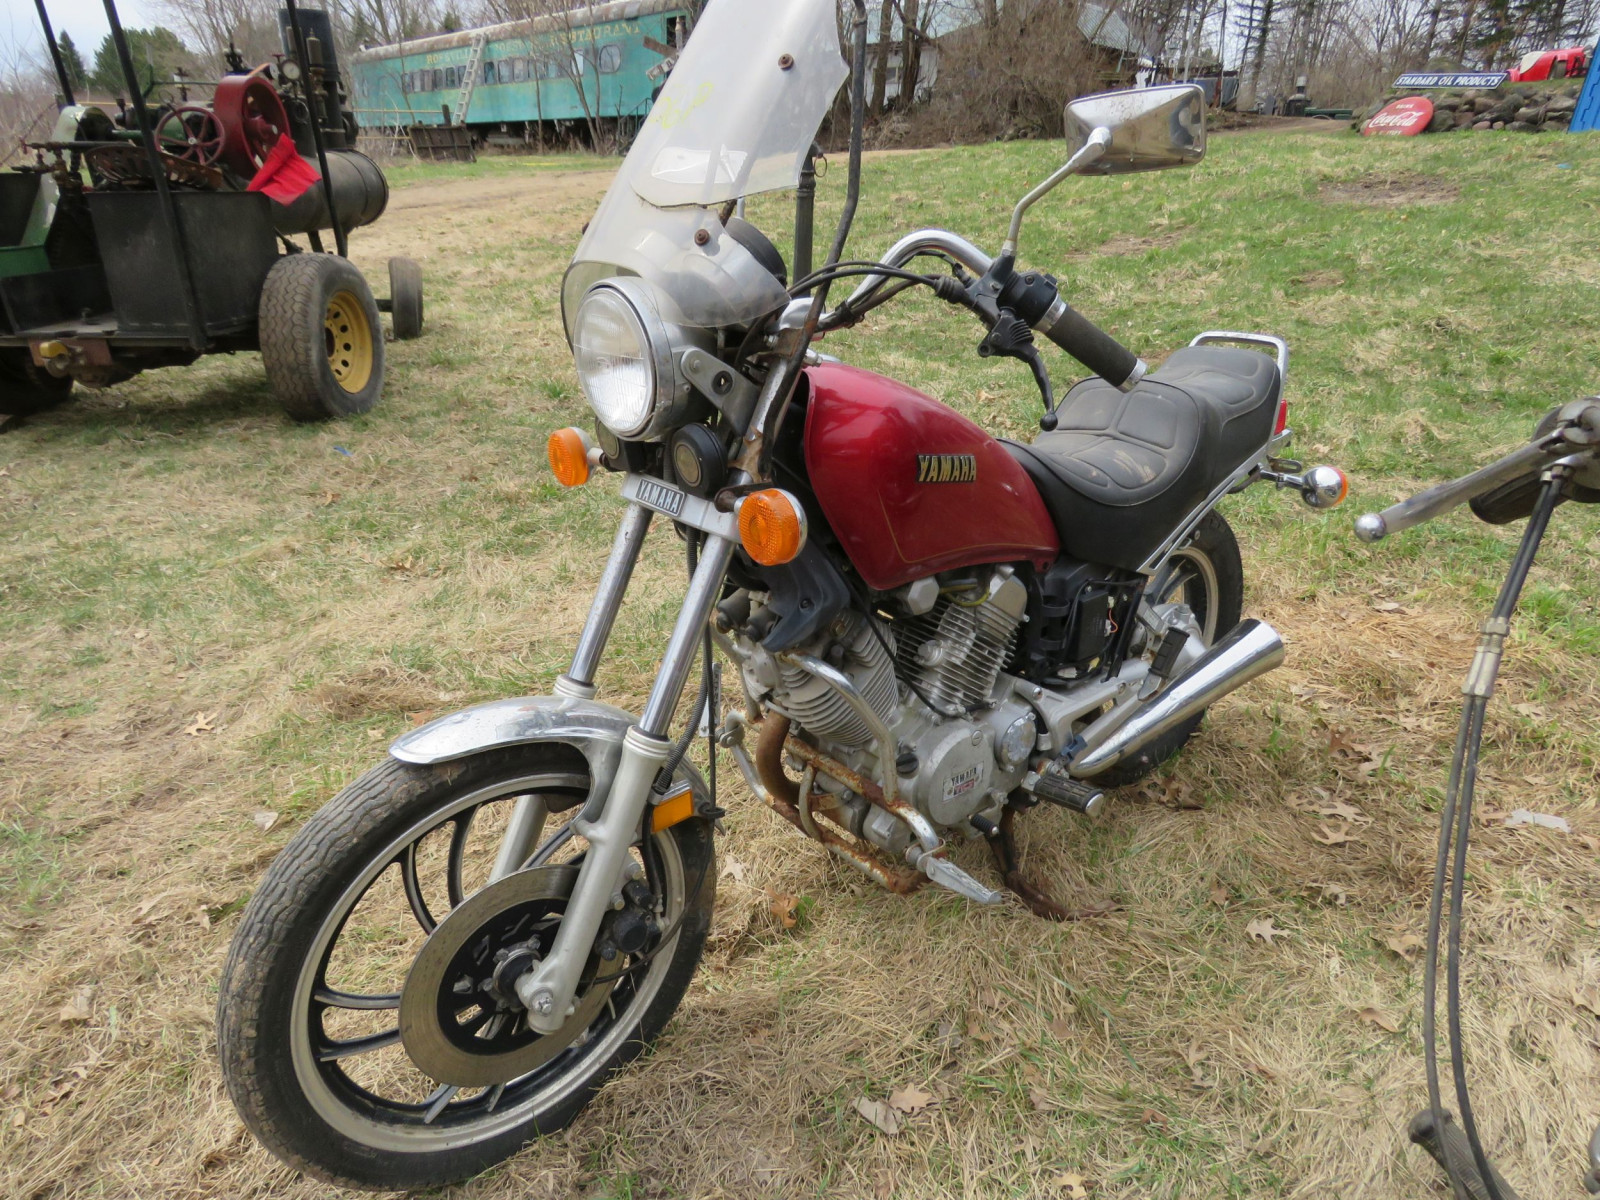 1982 Yamaha Motorcycle for Project or parts - Image 2